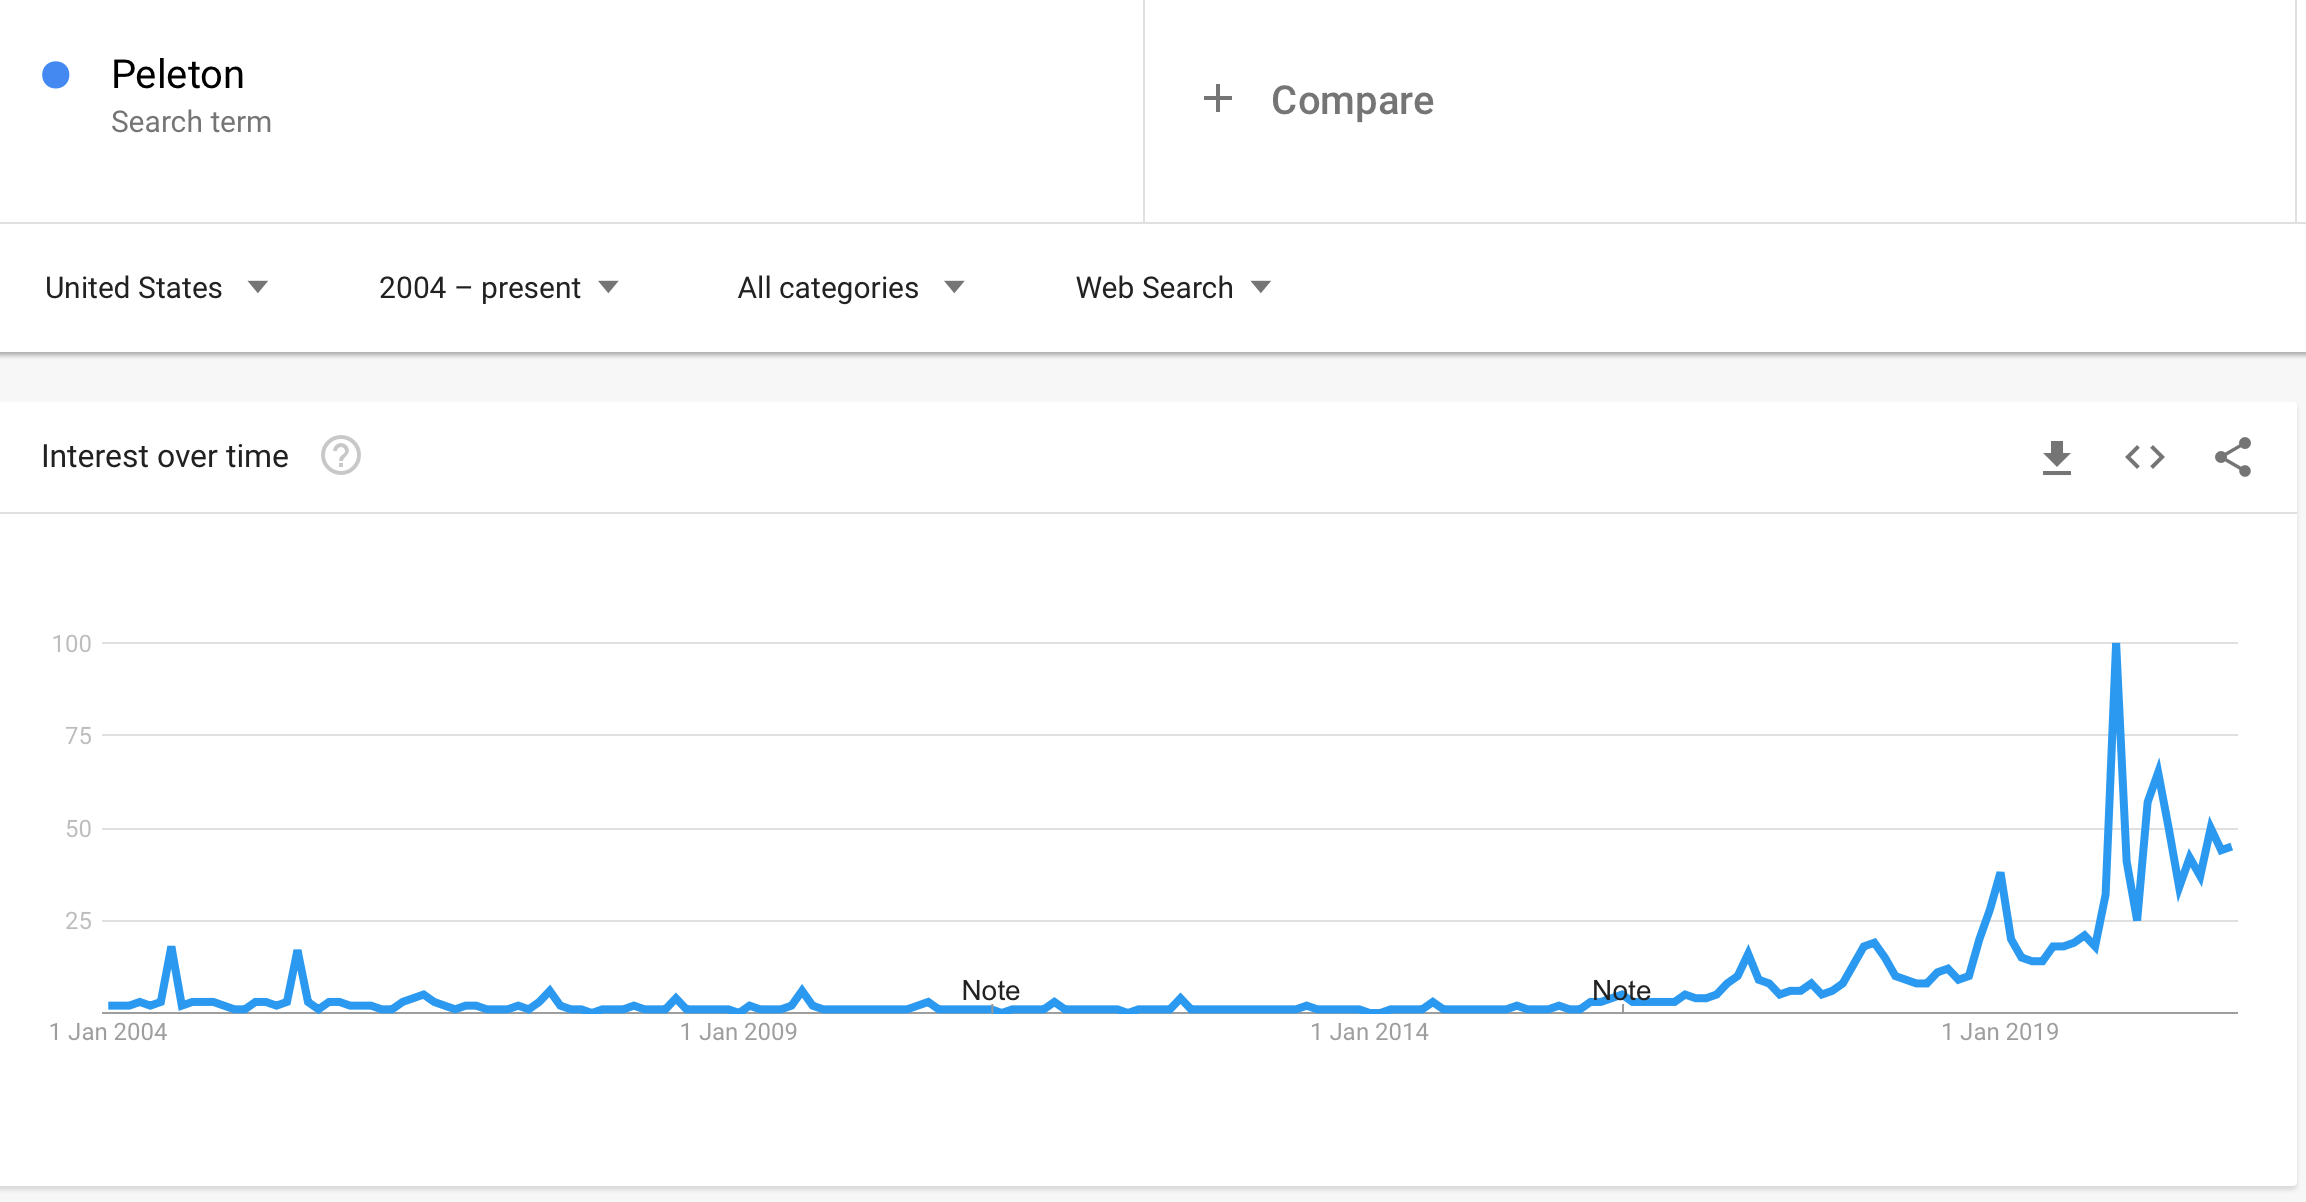 Peleton Search Interest Results